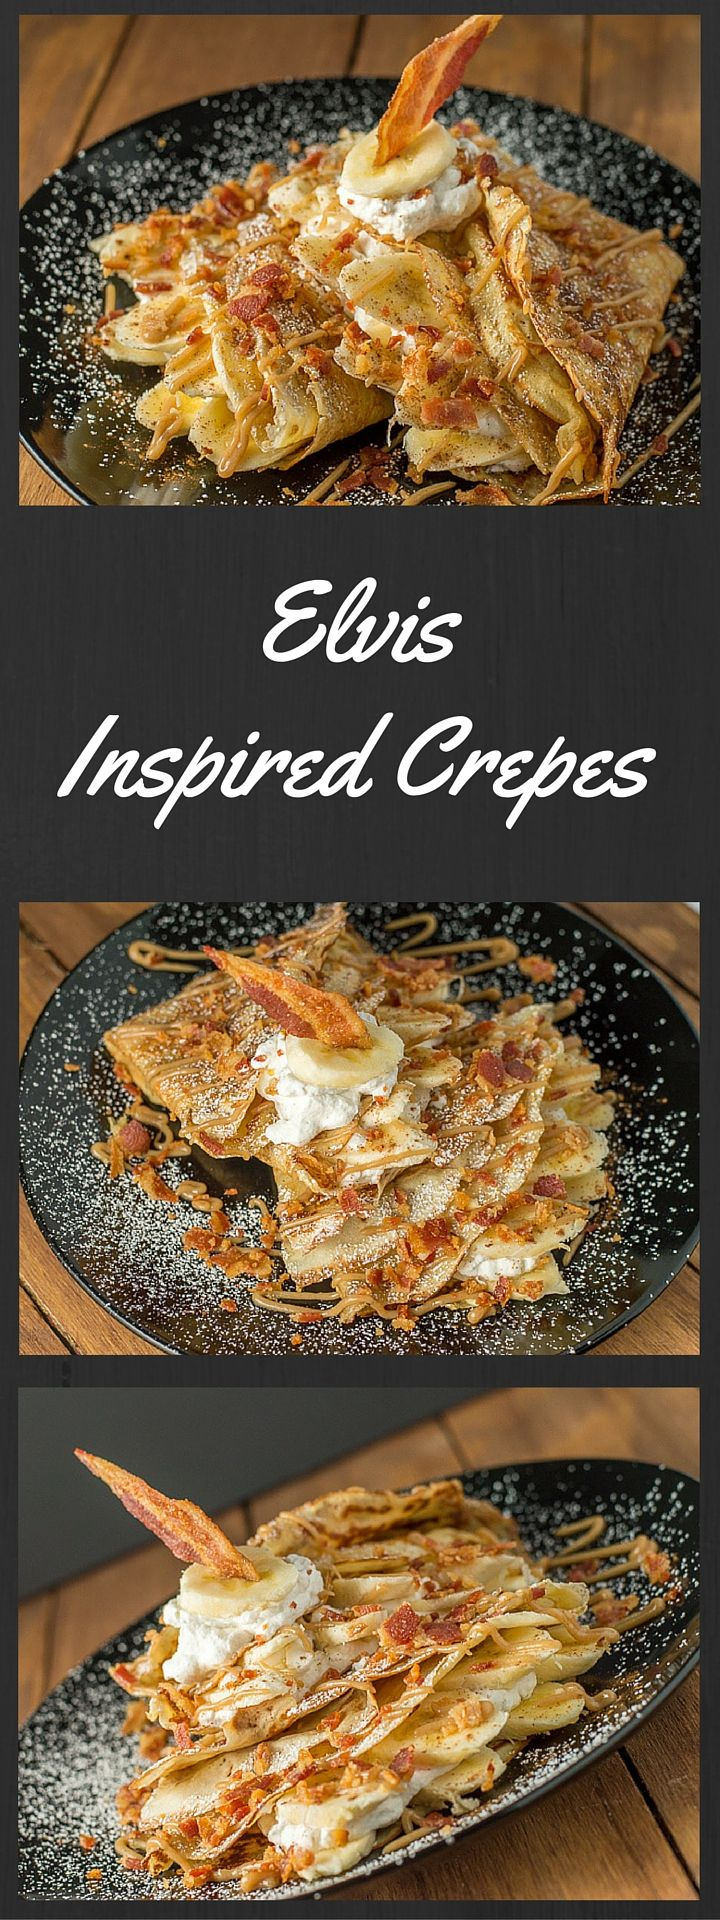 "I ""Can't Help Falling In Love"" with these Elvis Inspired Crepes:"